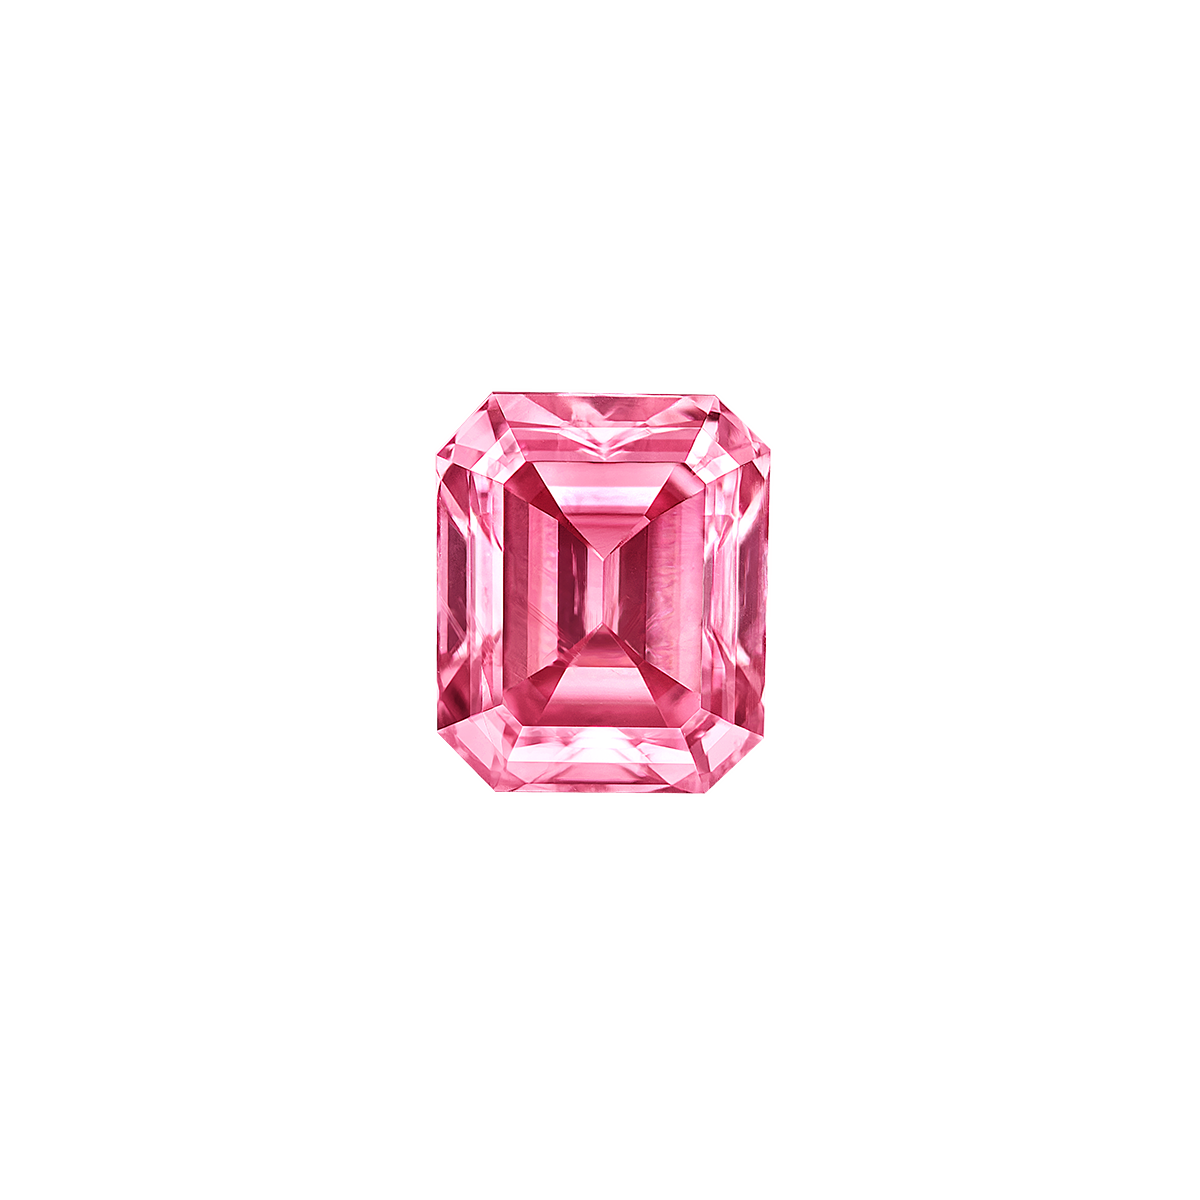 阿蓋爾濃彩粉彩鑽裸石